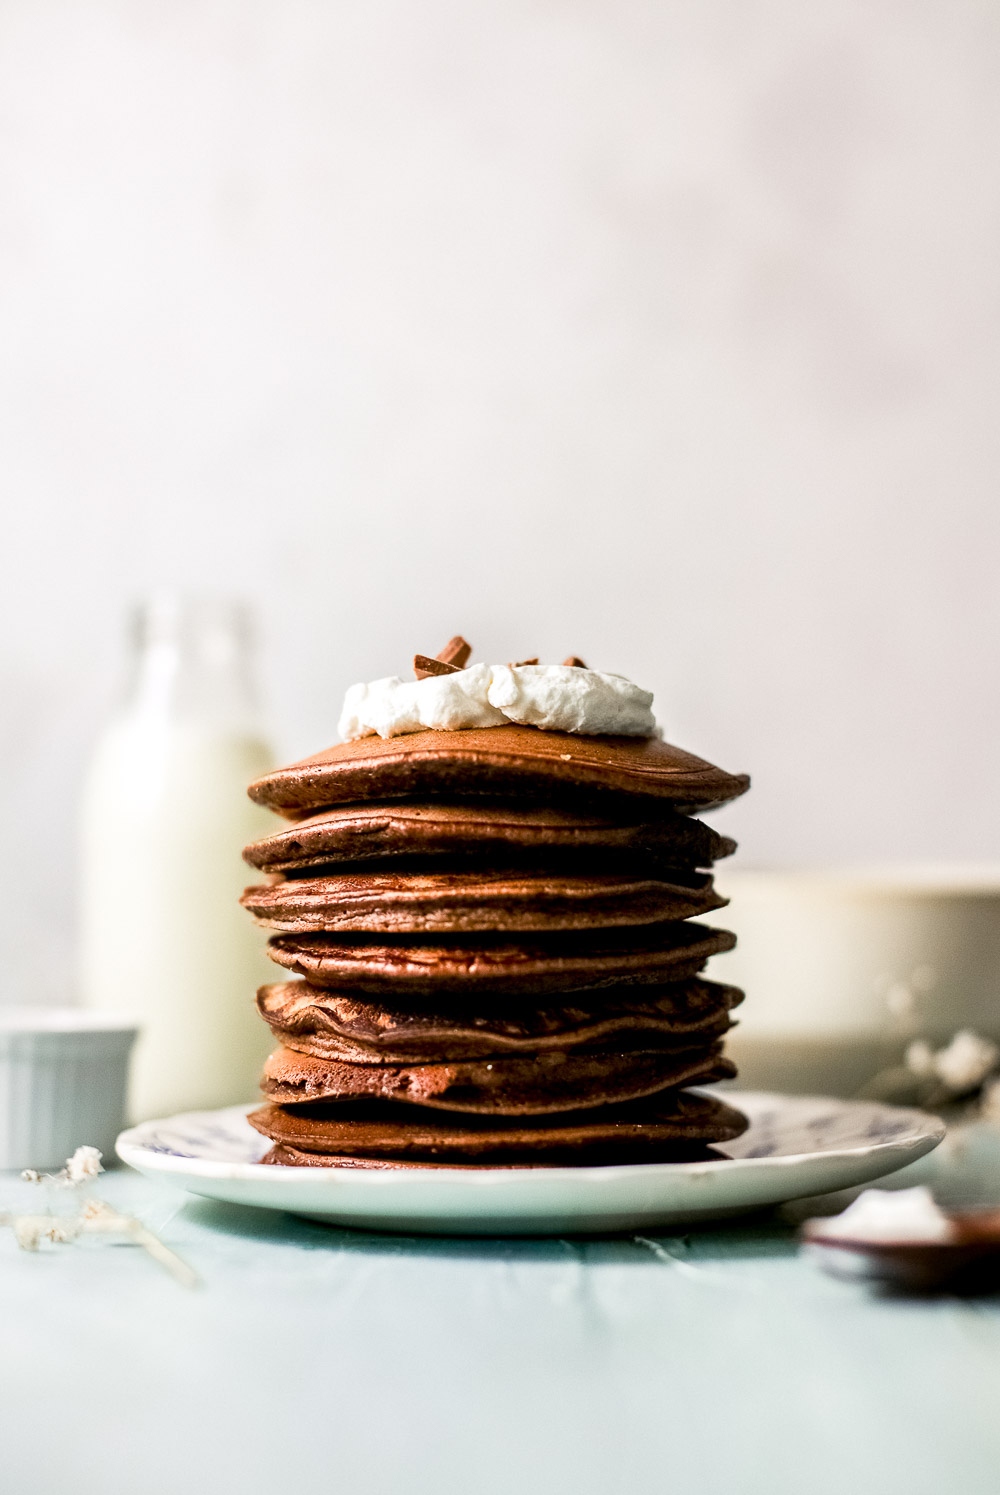 Pancakes, anyone? These chocolate pancakes are fluffy, hearty, and make the perfect weekend breakfast or brunch. Best of all, you can mix the ingredients in a blender. And don't forget to check more brunch ideas on the blog.